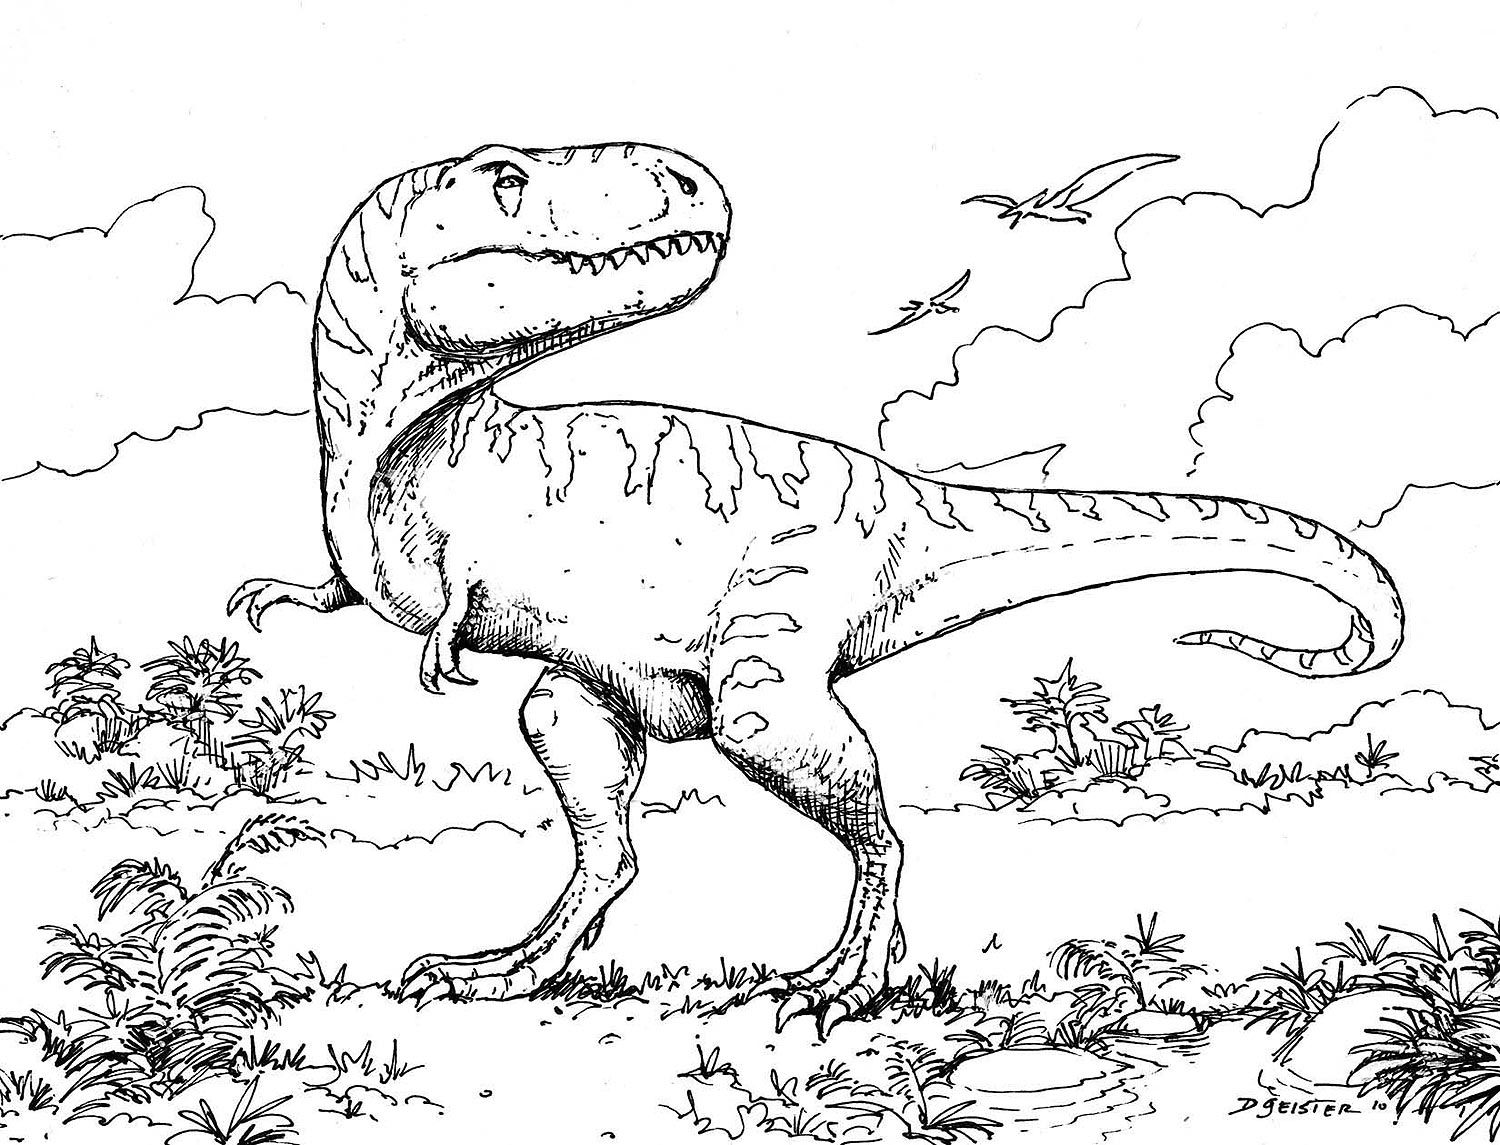 Free Printable Dinosaur Coloring Pages For Kids Dinosaur Coloring Sheets Dinosaur Coloring Pages Cartoon Coloring Pages